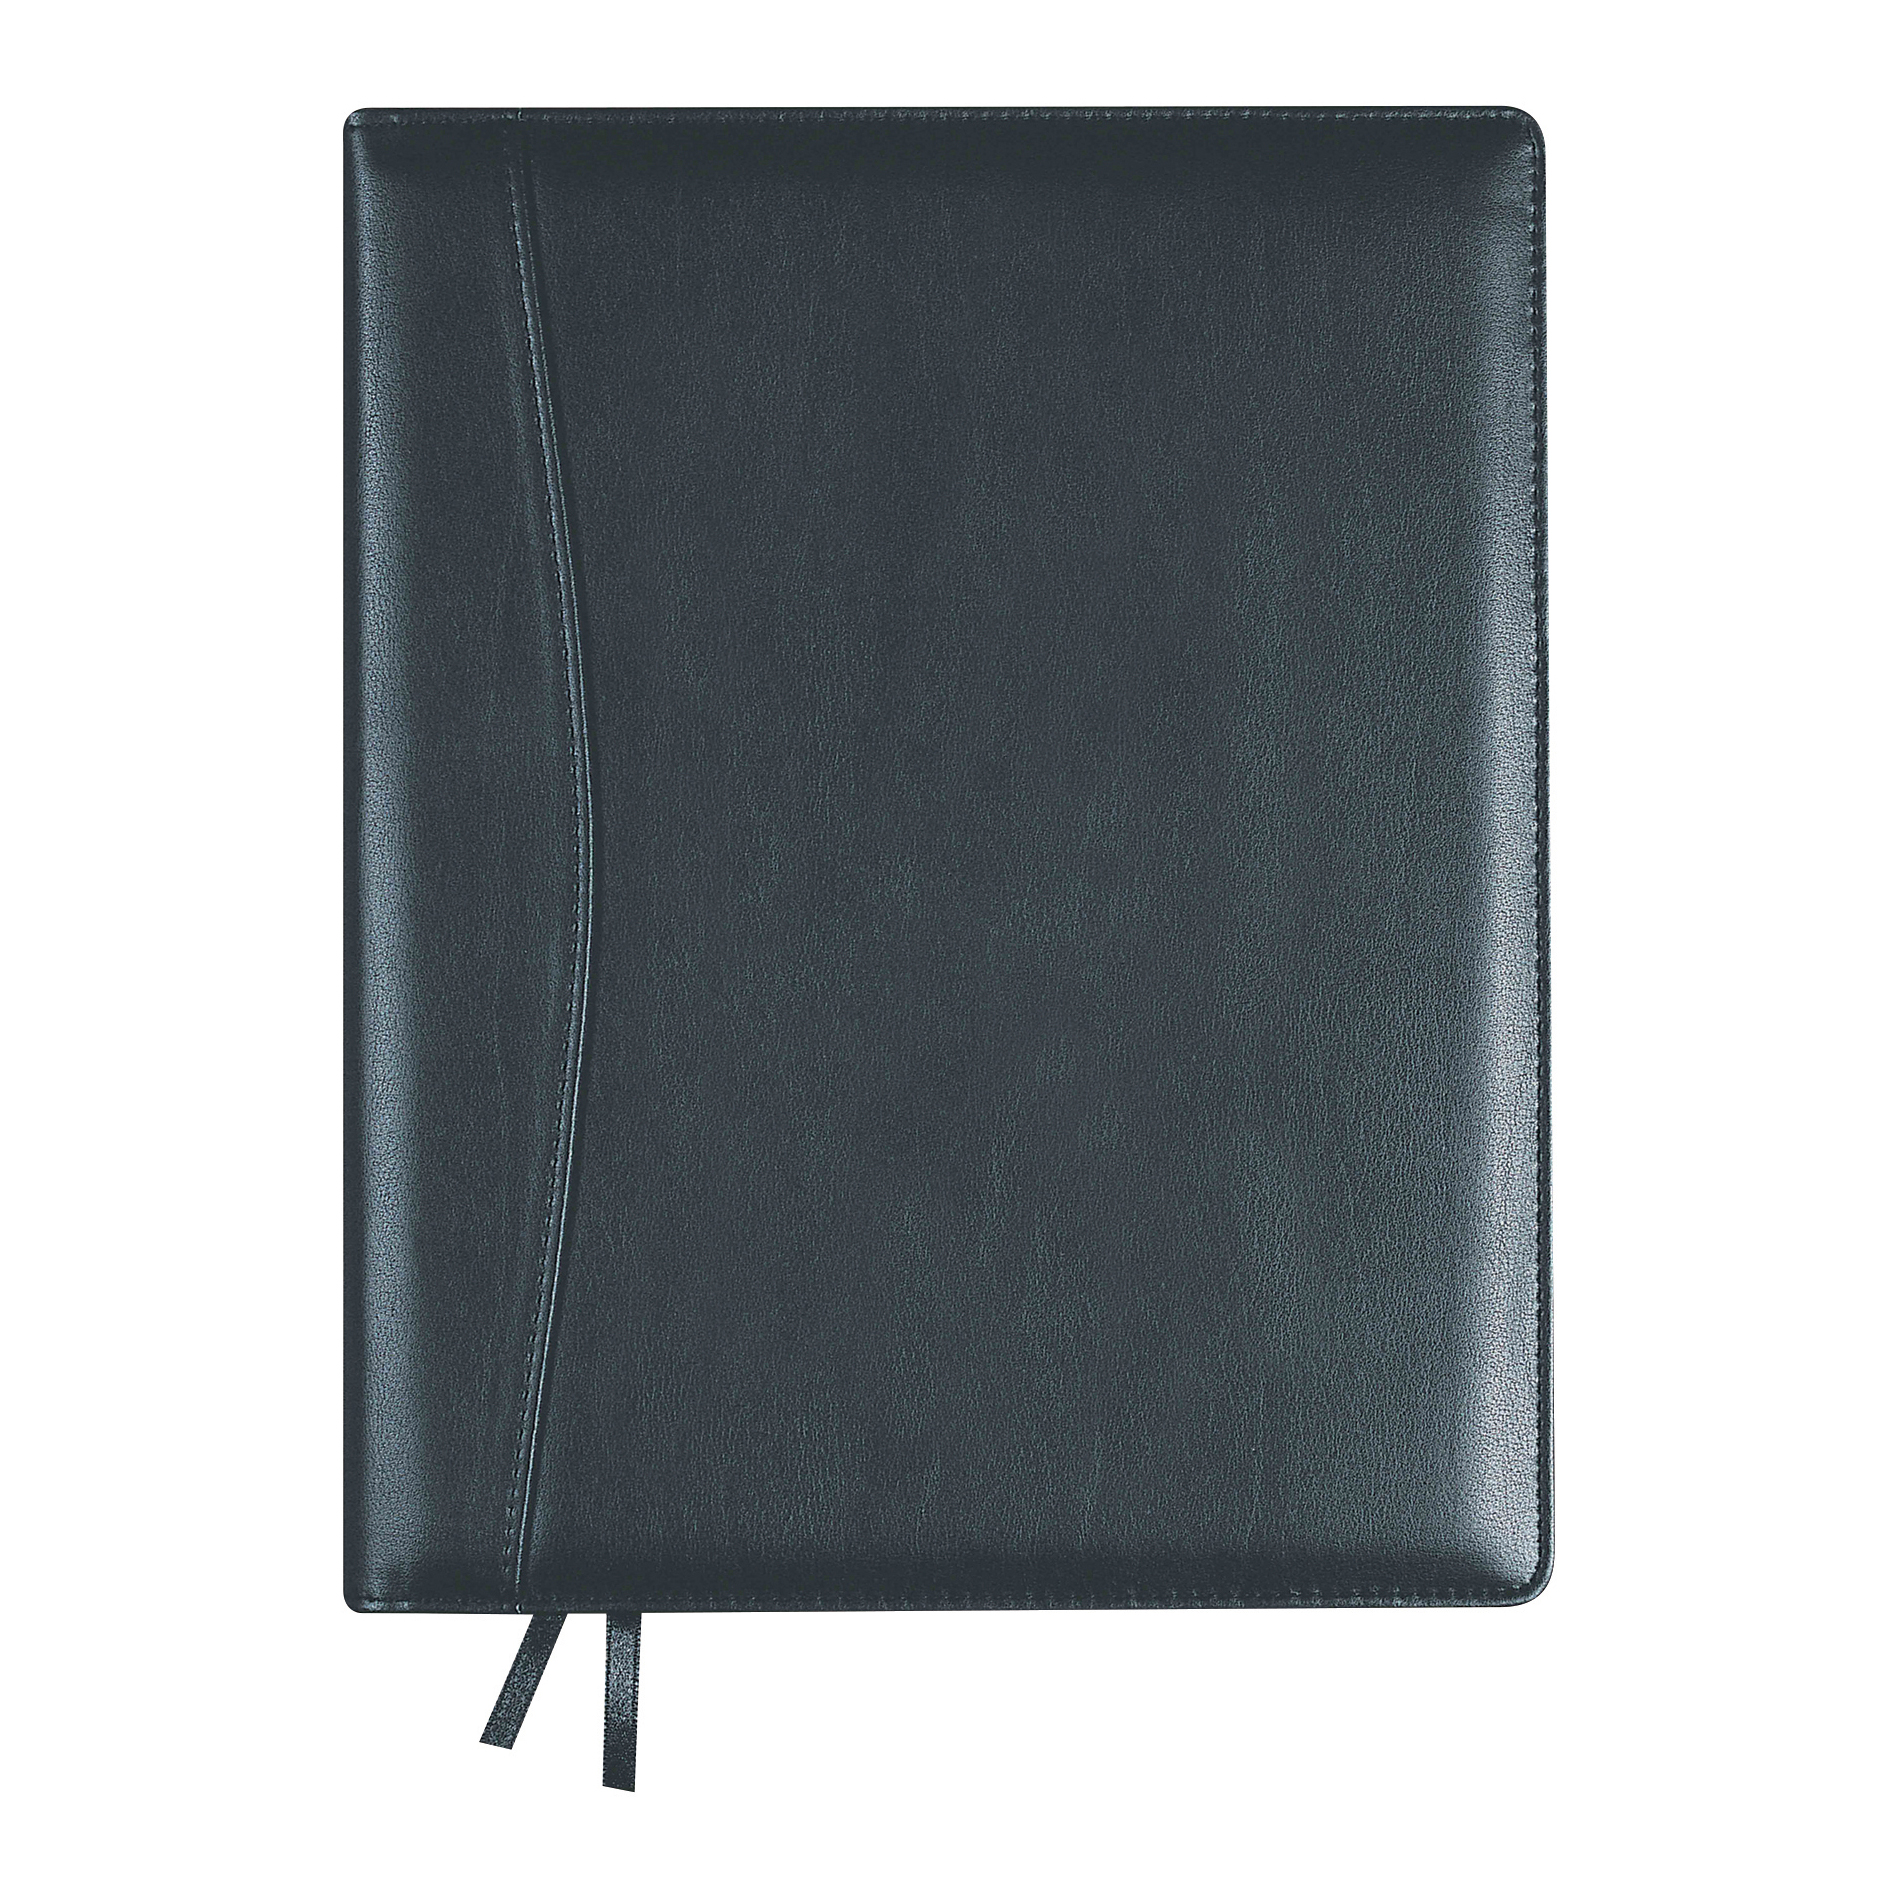 Diaries or refills Collins 2021 Elite Manager Diary Week to View Wirobound 190x260mm Black Ref 1190V 2021